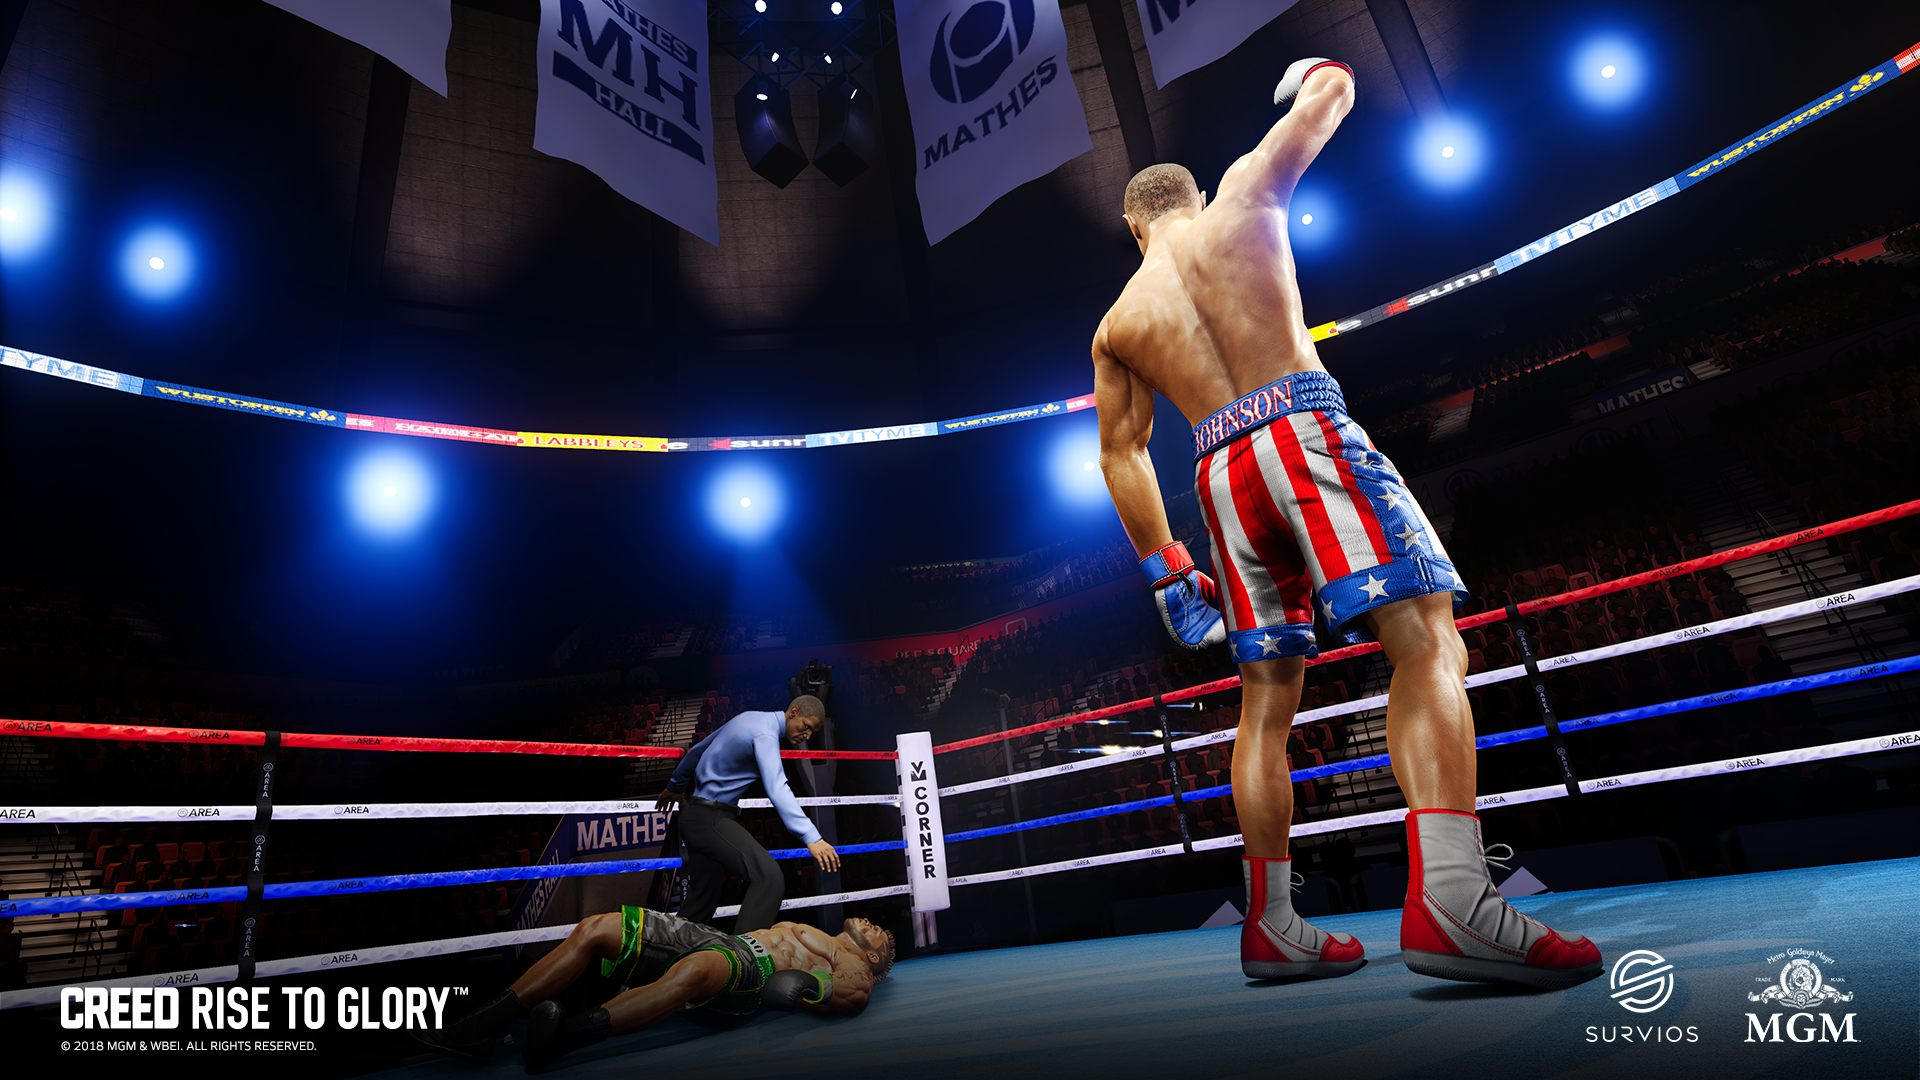 Creed: Rise to Glory for PSVR gets first free update | Shacknews